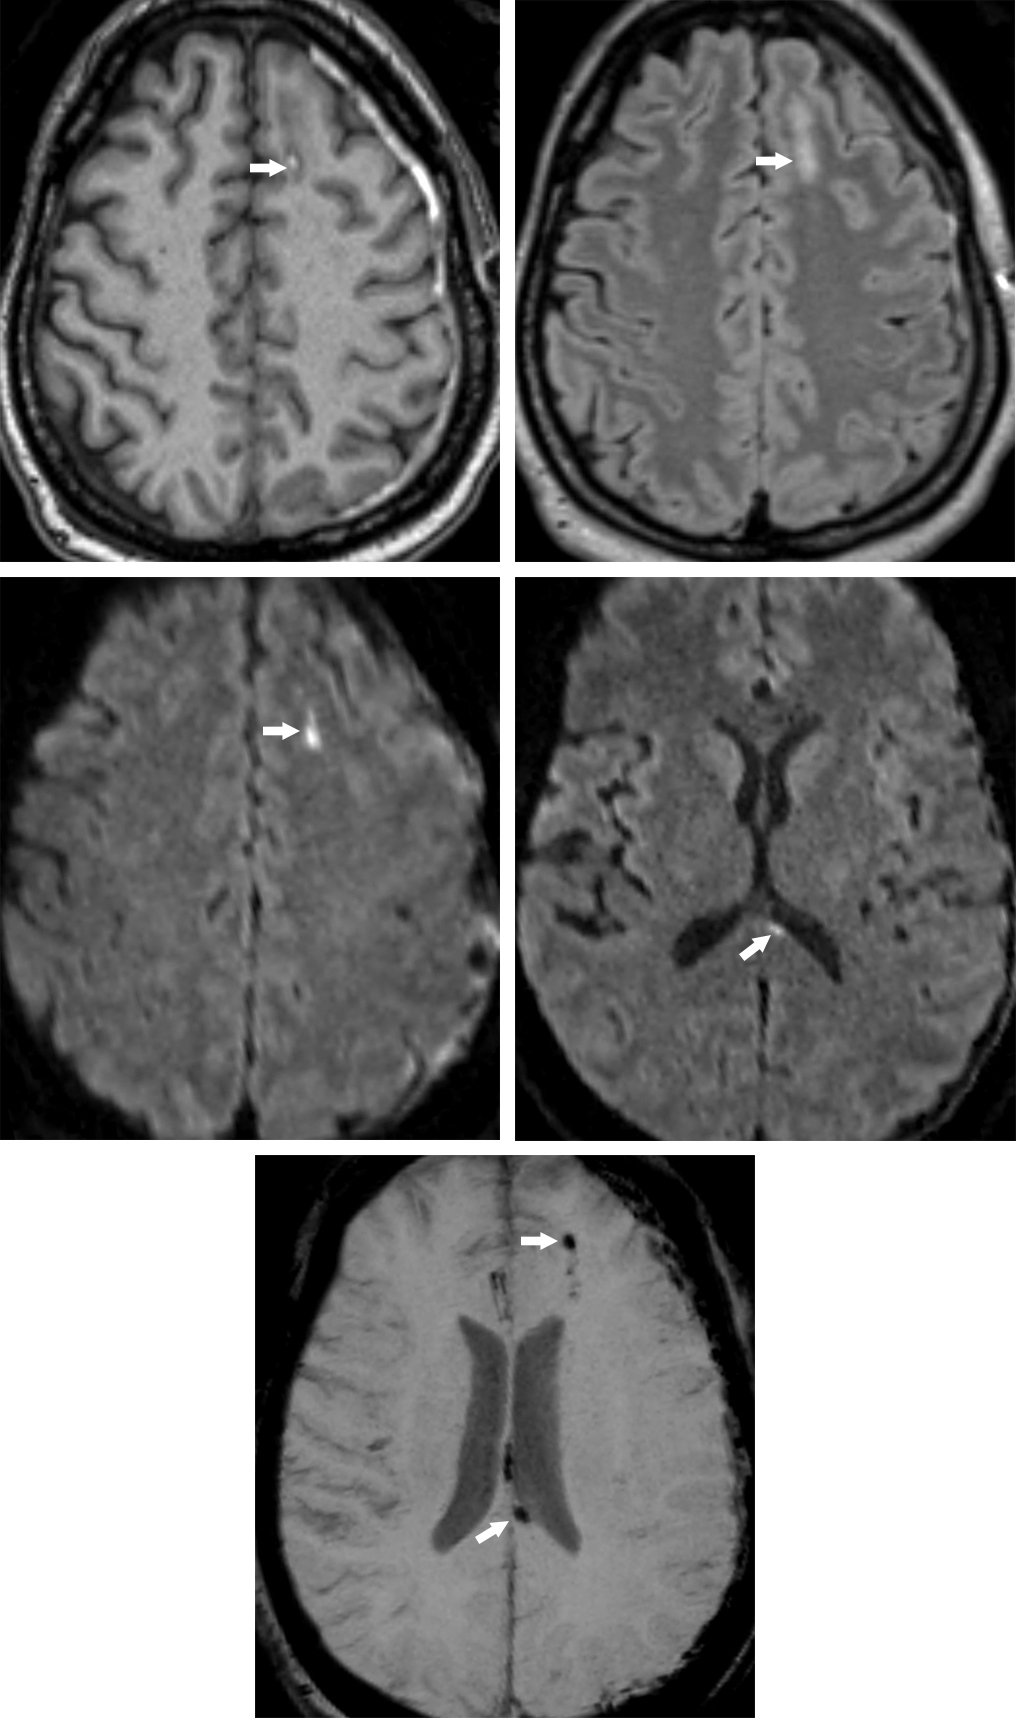 Figure 1: Shear injury is visible in the subcortical white matter of the left frontal lobe in this patient as hyperintense on T1 due to hemorrhage (top row left). The same area is bright on FLAIR due to edema (top row right) and bright on DWI due to cytotoxic edema (middle row left). The SWI (bottom row) also shows low signal blood products in this area. Similar findings in the splenium of the corpus callosum (middle row right, bottom row) and posterior septum pellucidum (bottom row) indicate a grade 2 shear injury and portend a poorer prognosis than if the involvement were only at the gray-white junction. A subacute left subdural hematoma is also visible on each sequence, but most clearly visible as hyperintense on T1 (top row left).